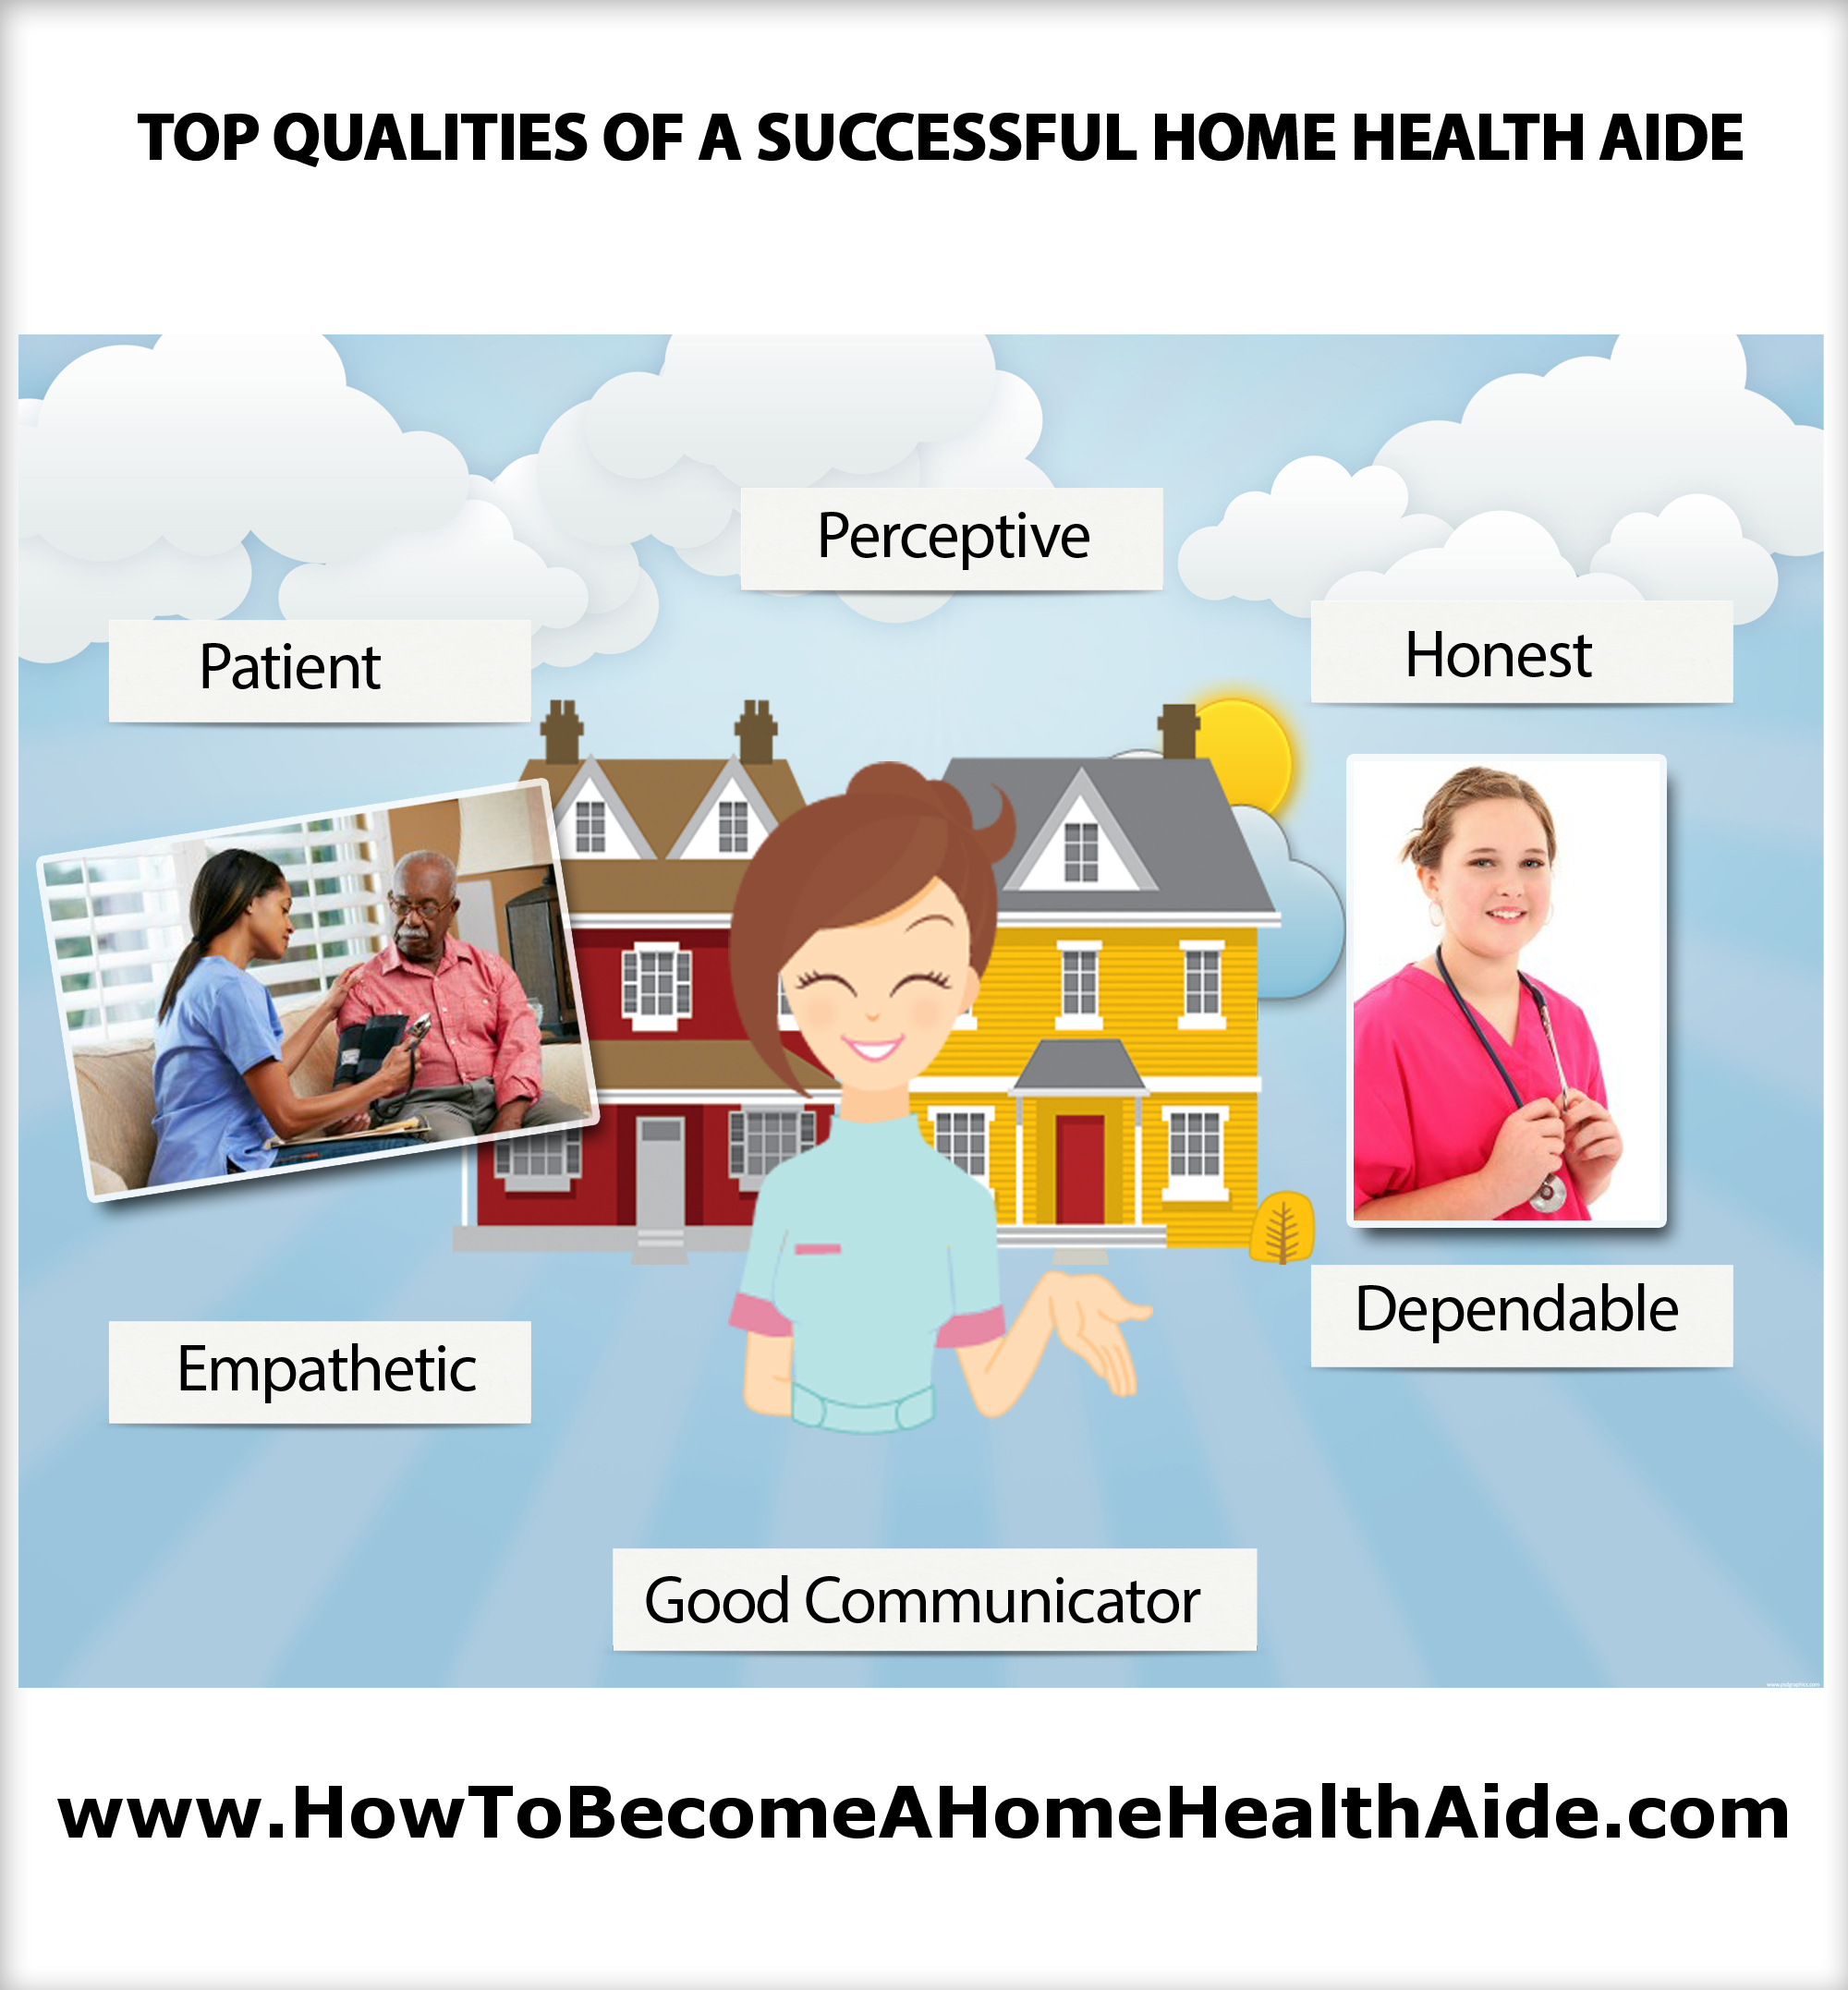 Top Qualities of a Successful HHA